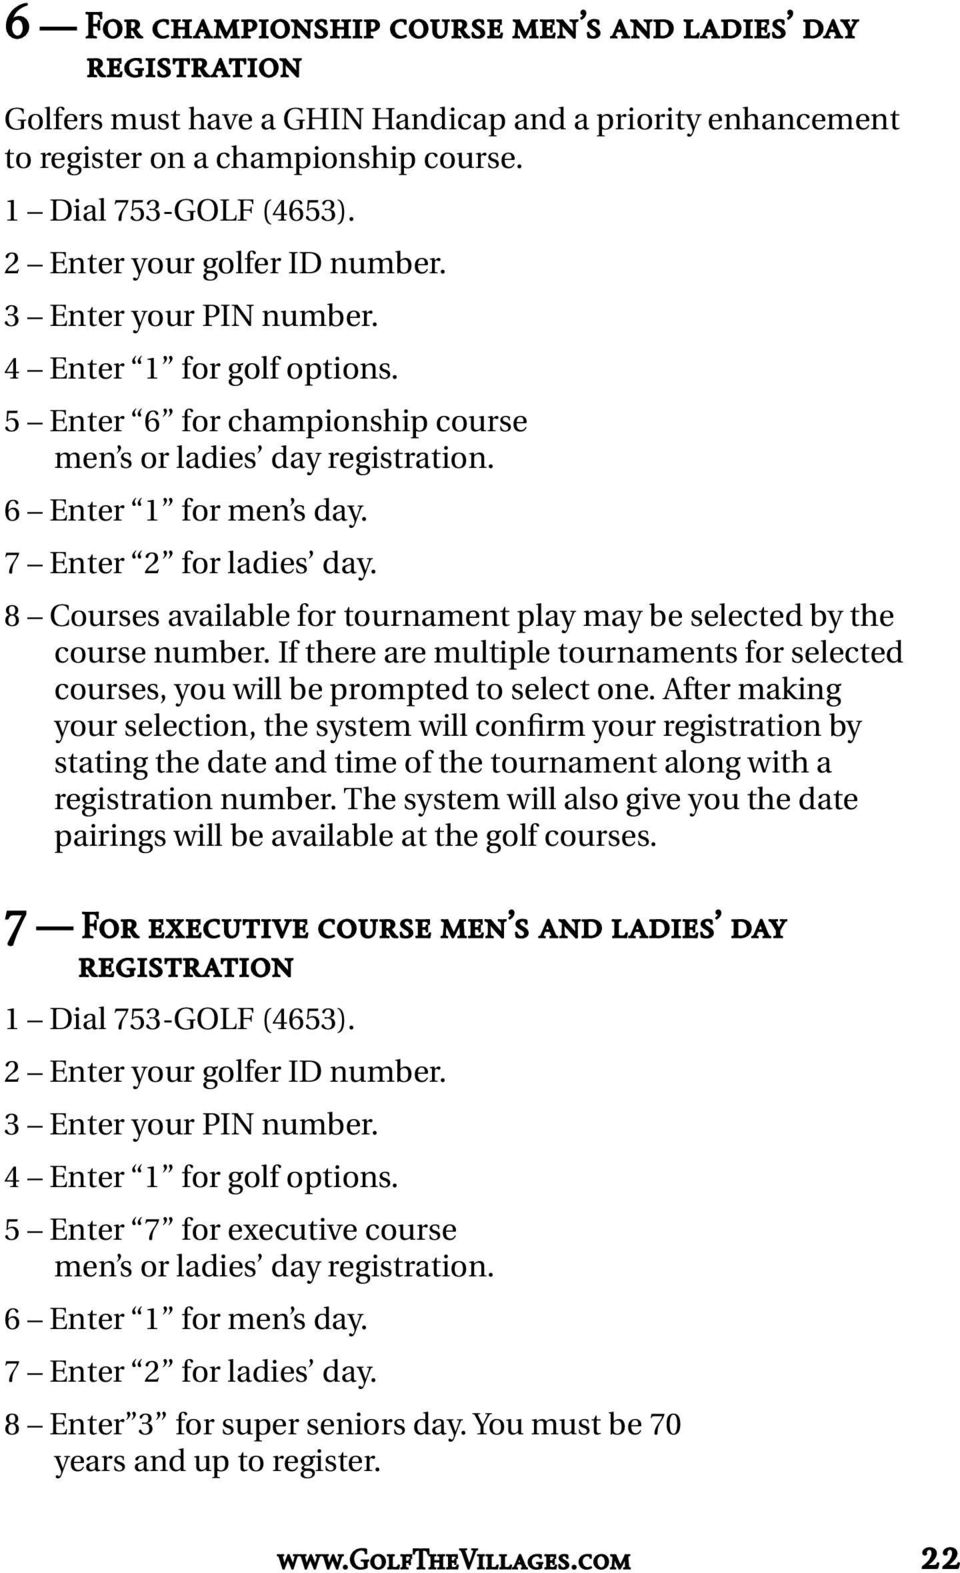 If there are multiple tournaments for selected courses, you will be prompted to select one.